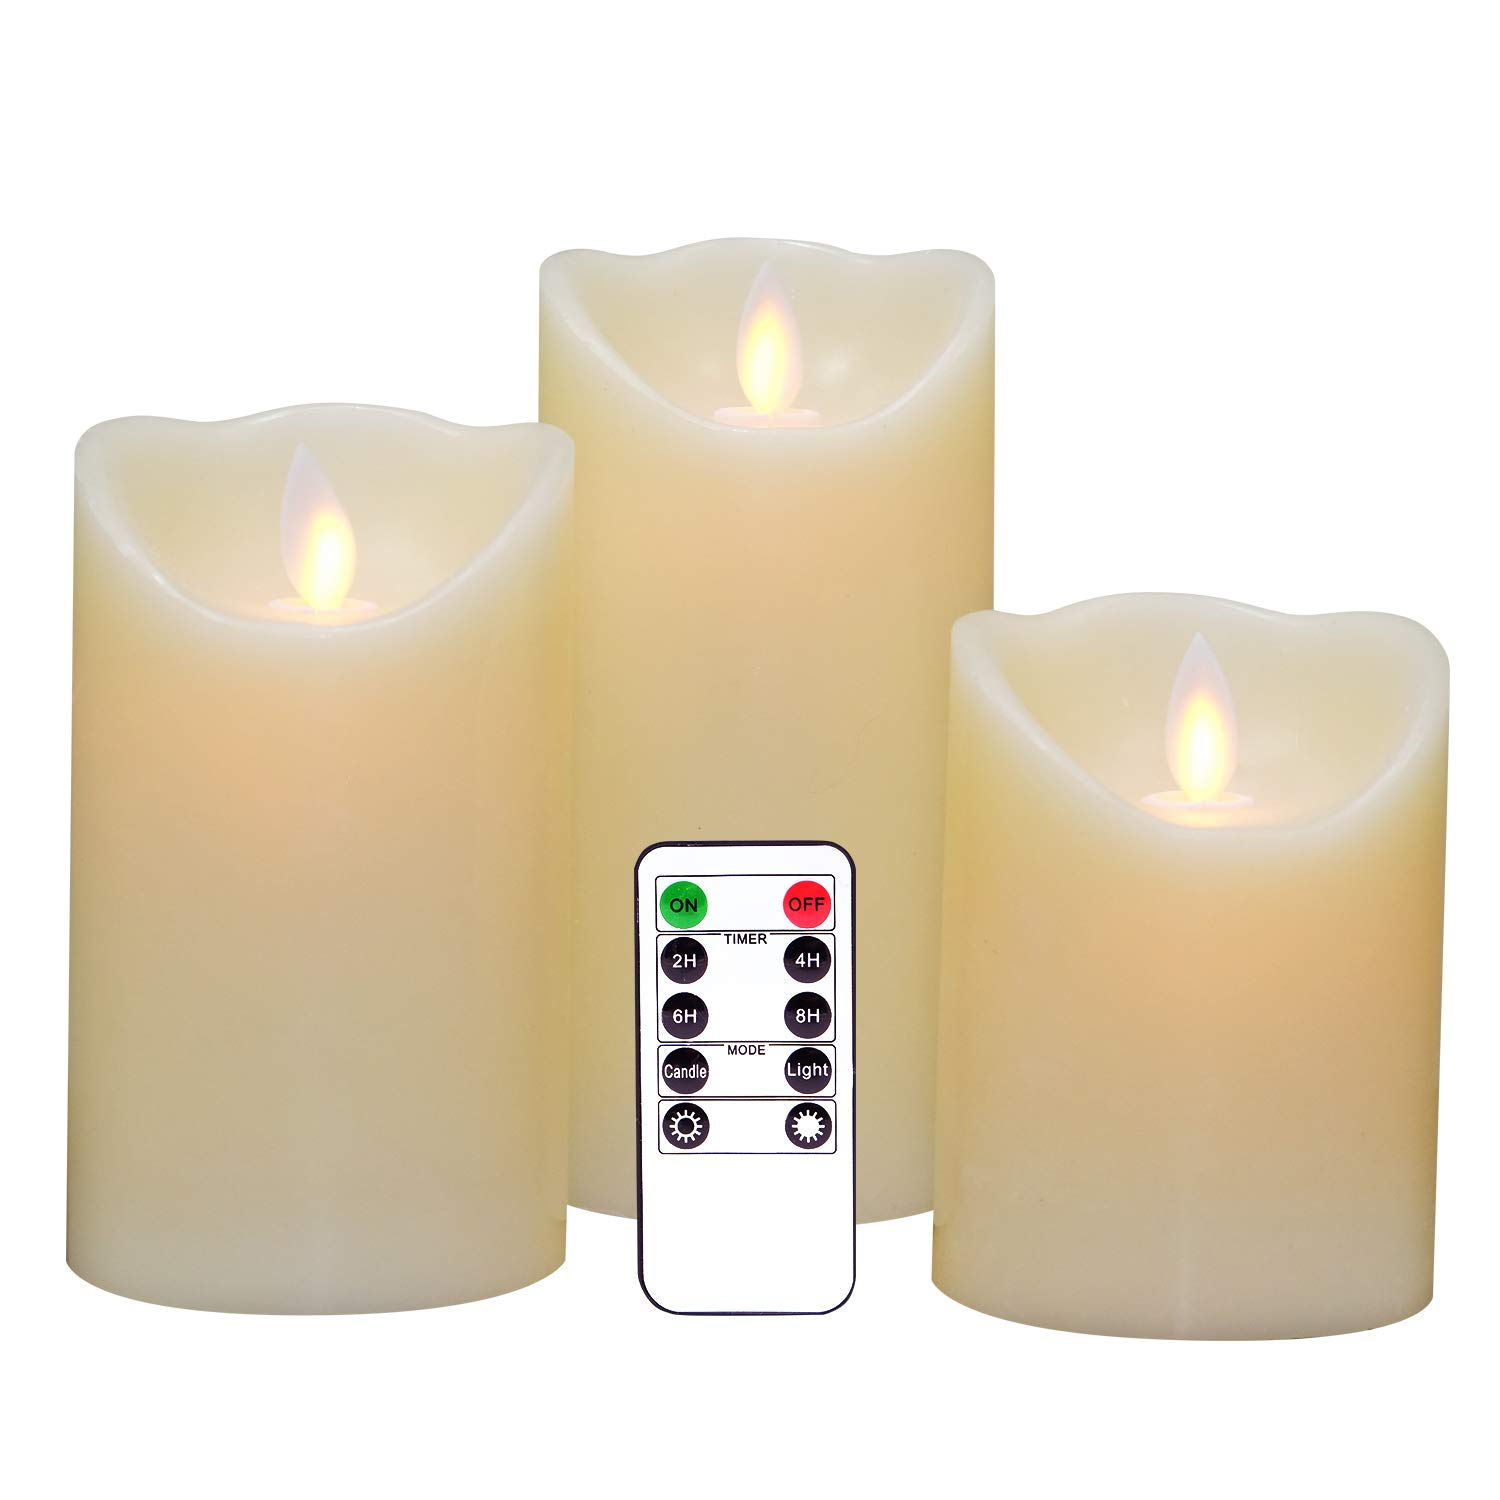 Eldnacele Flameless Candles Pillar Flickering Dancing Flame Battery Operated LED Candles Warm White Set of 3(H4 5'' 6'' X D 3'') Moving Wick, Real Wax Remote Timer Parties Home Decoration